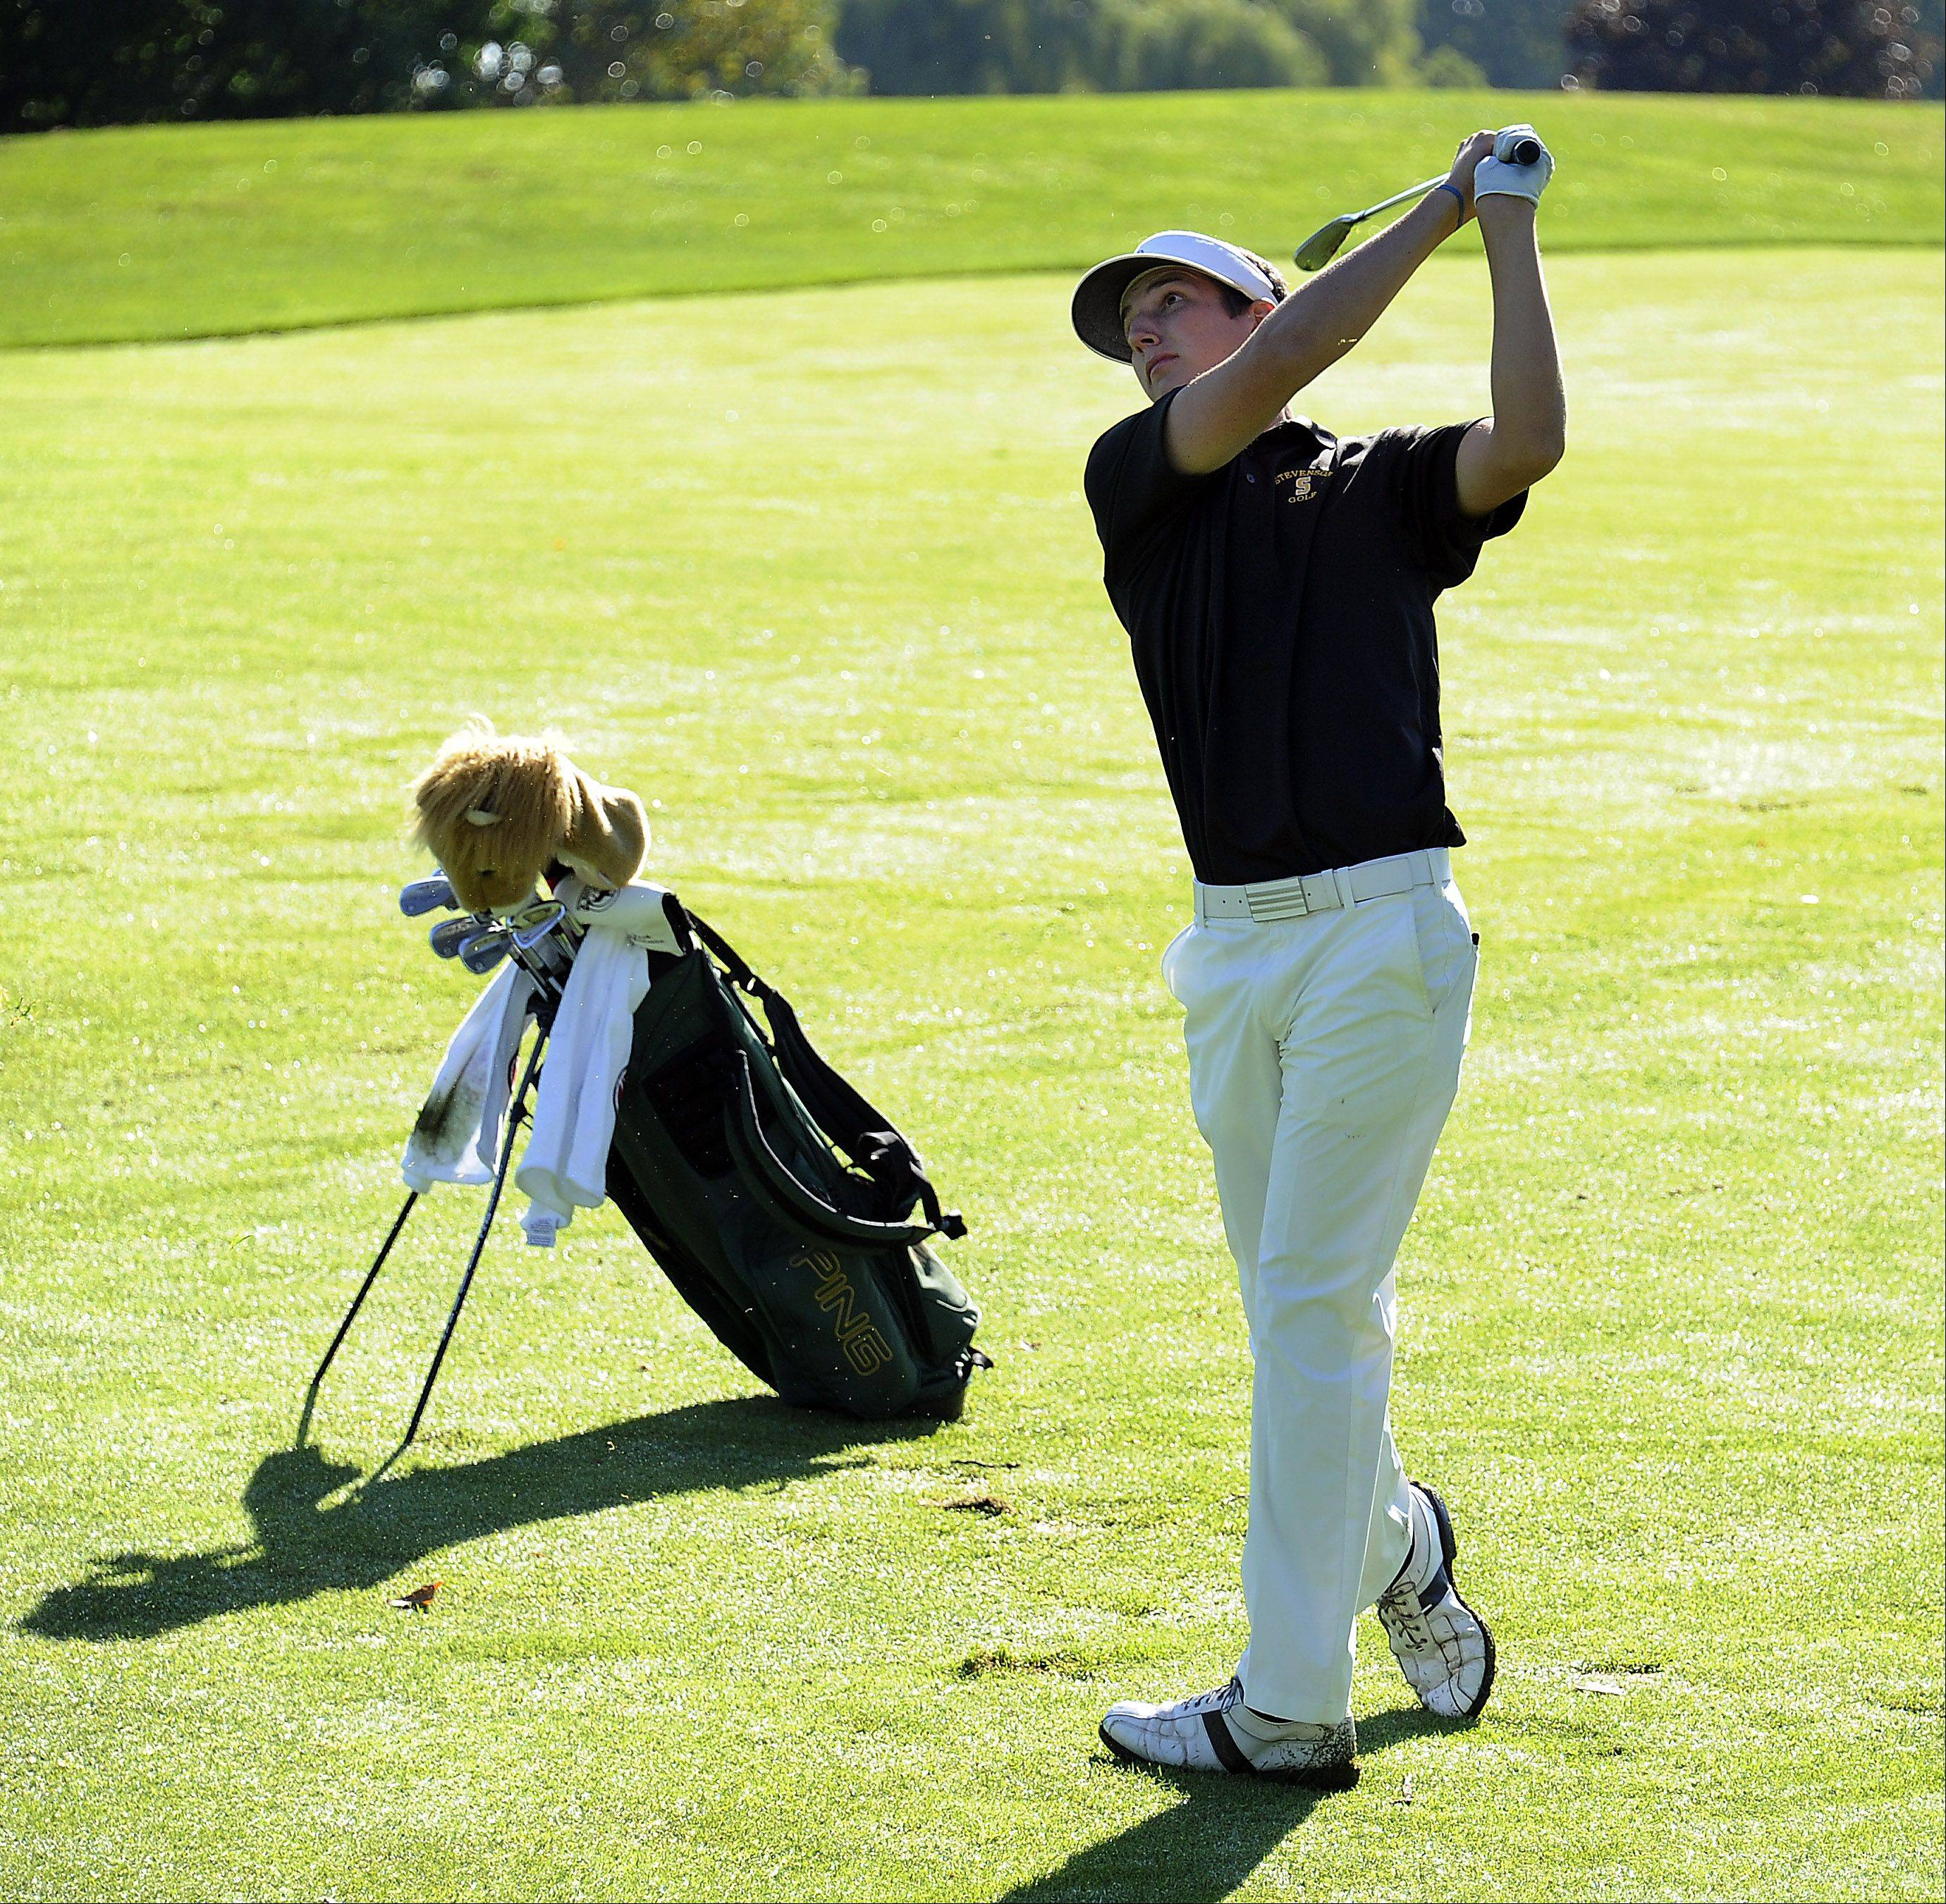 Stevenson's Jack Spellman chips on the green at No. 5 during the Wheeling Invitational on Saturday.